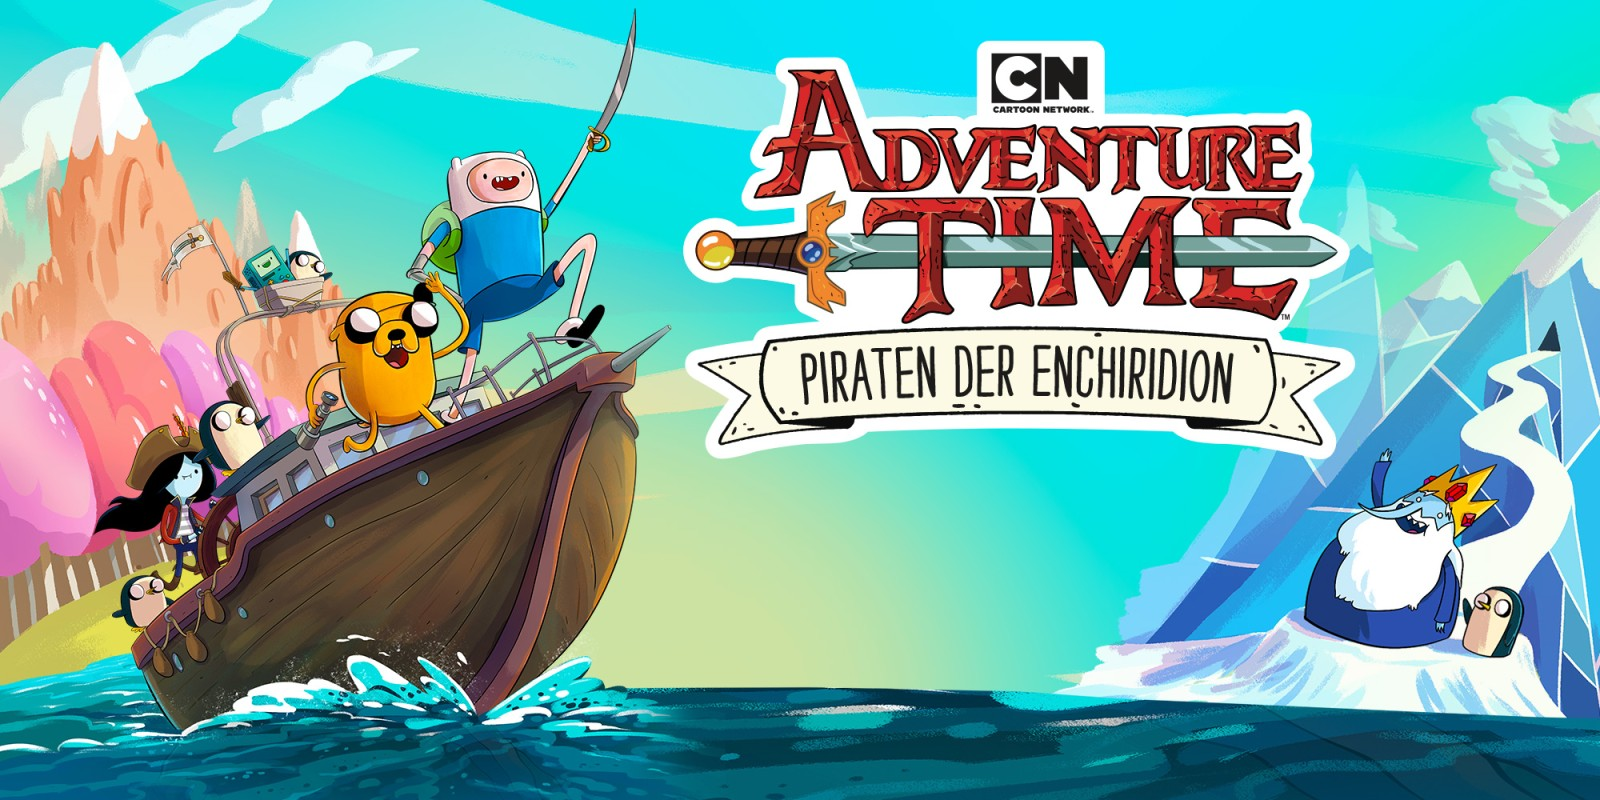 Cartoon Network Adventure Time: Piraten der Enchiridion